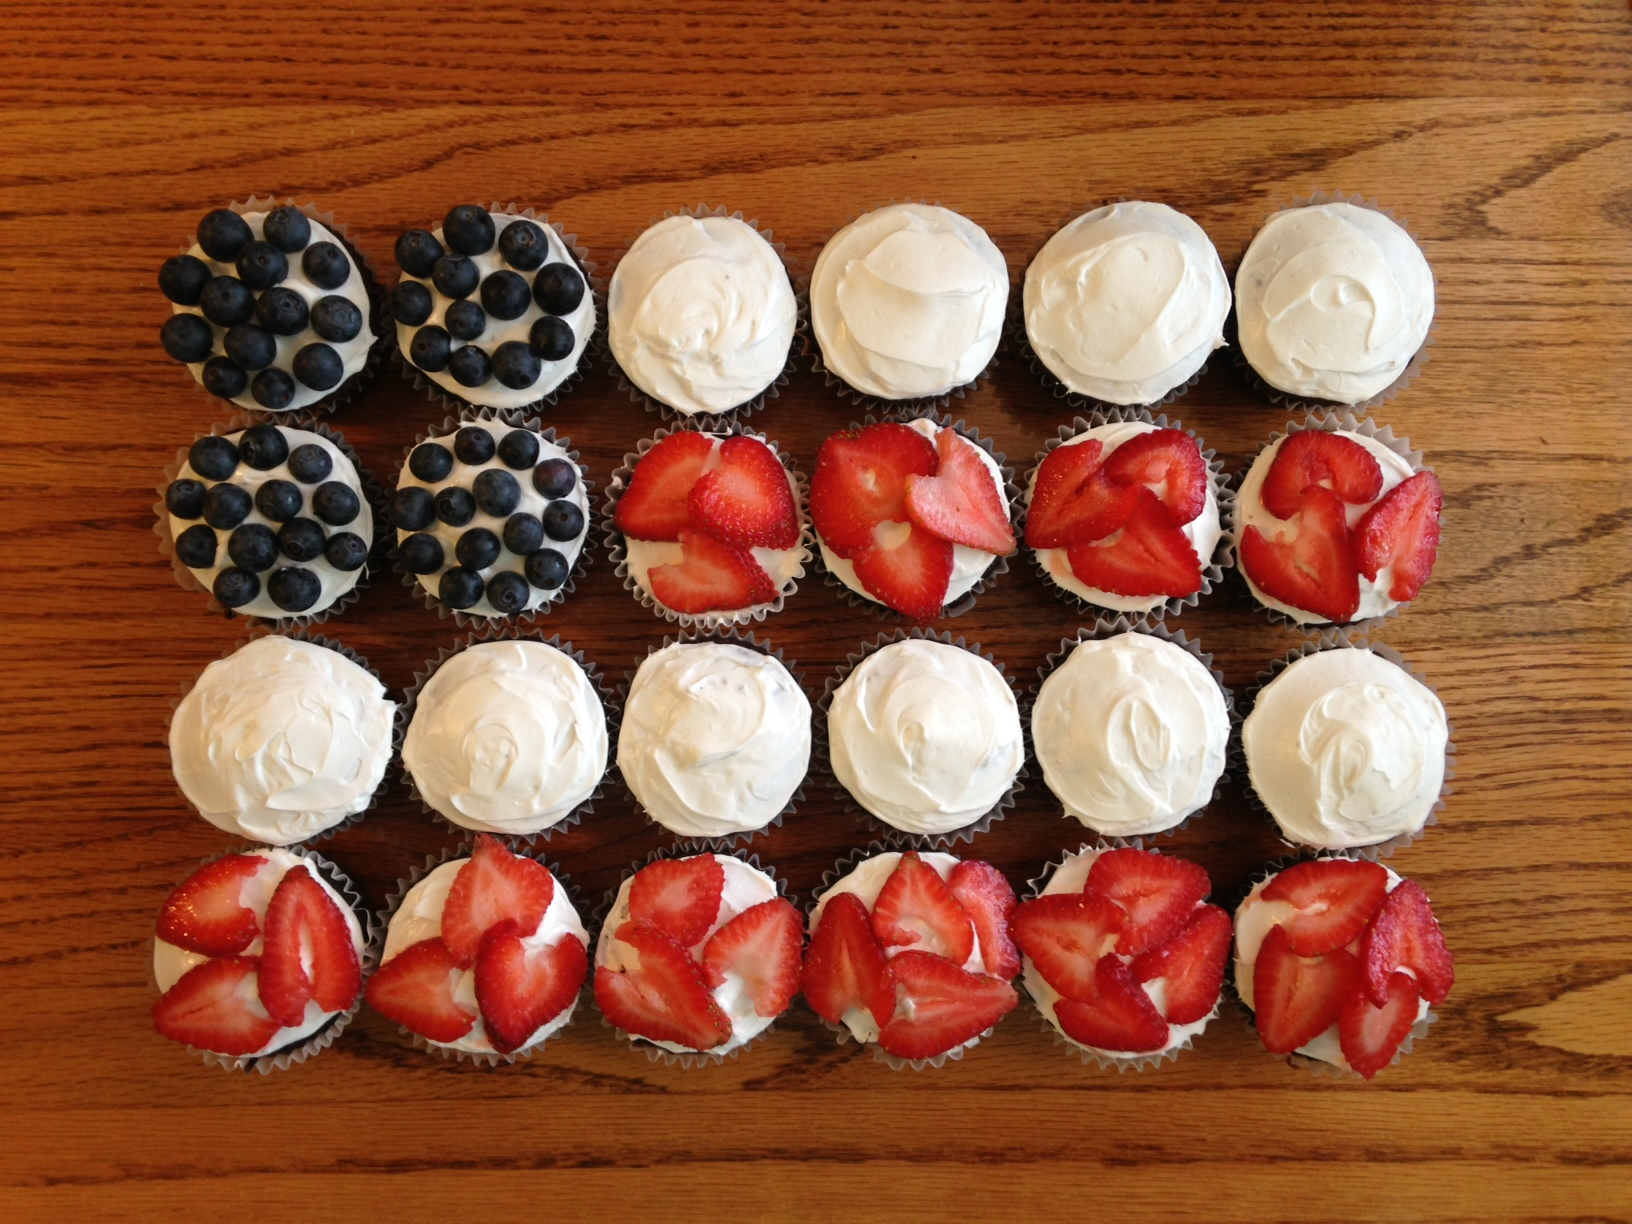 Happy Birthday, America! (c) Kristen Dembroski